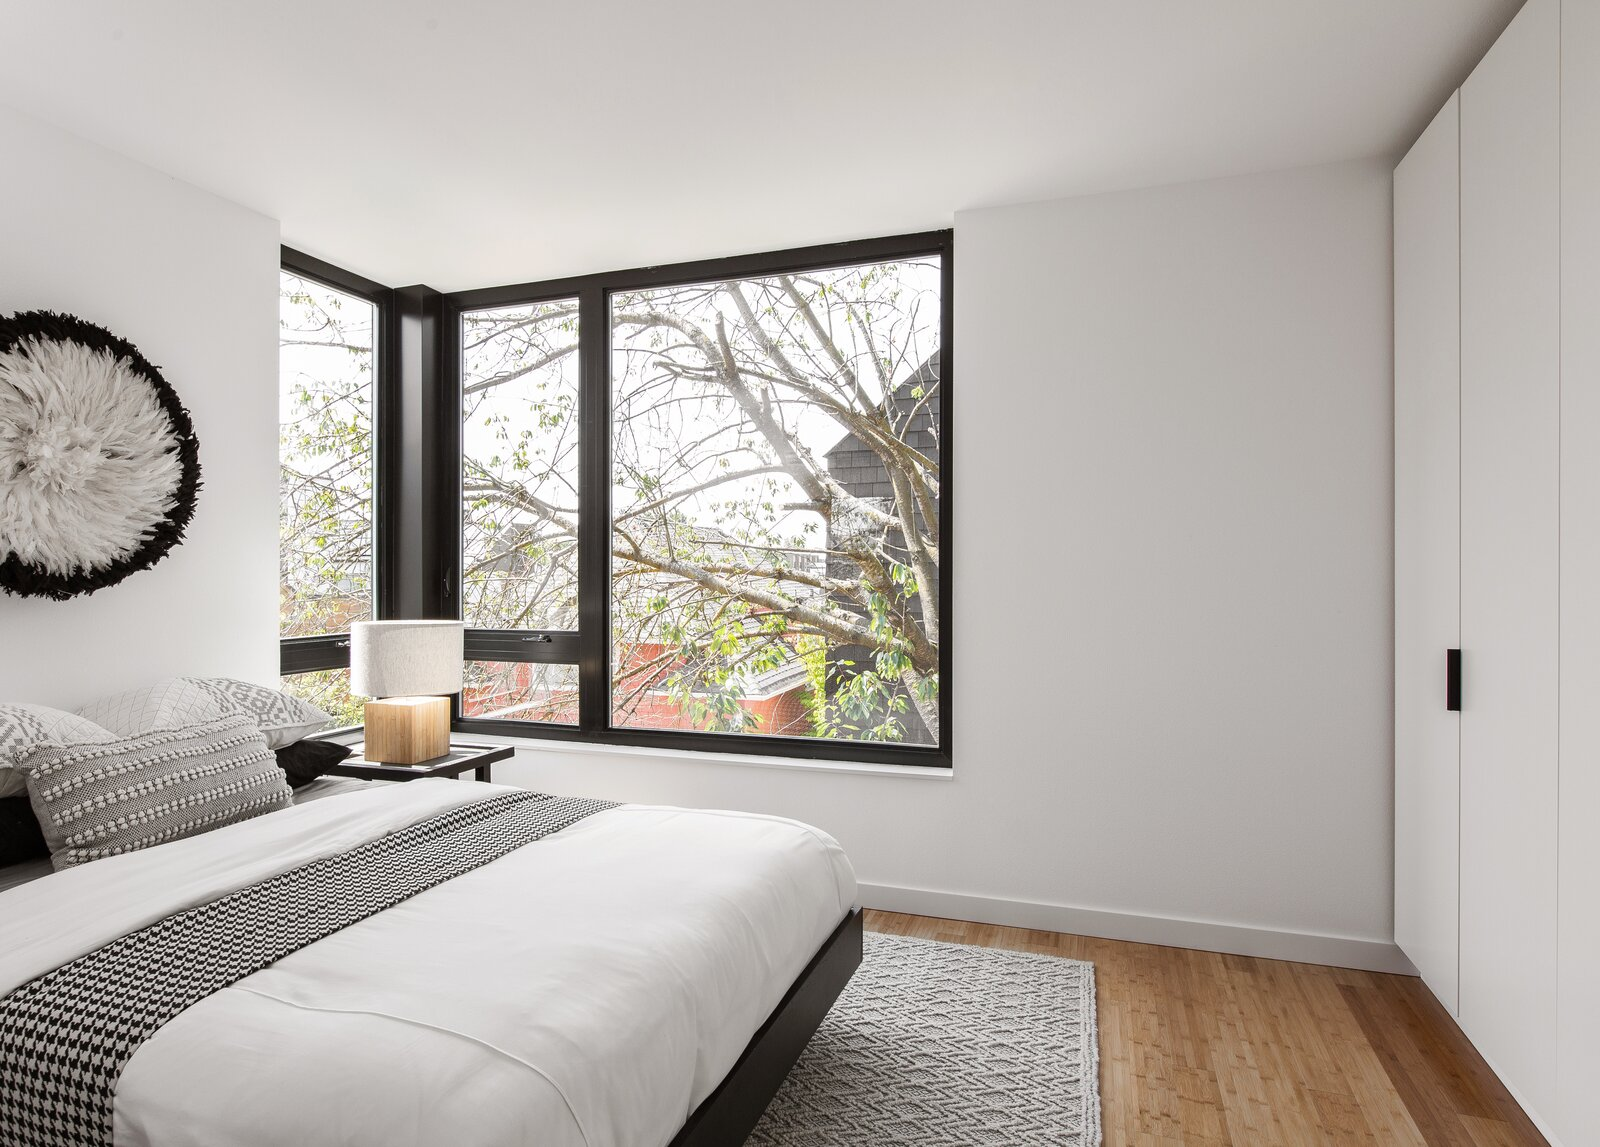 Bedroom in The Lookout by Hybrid Architecture